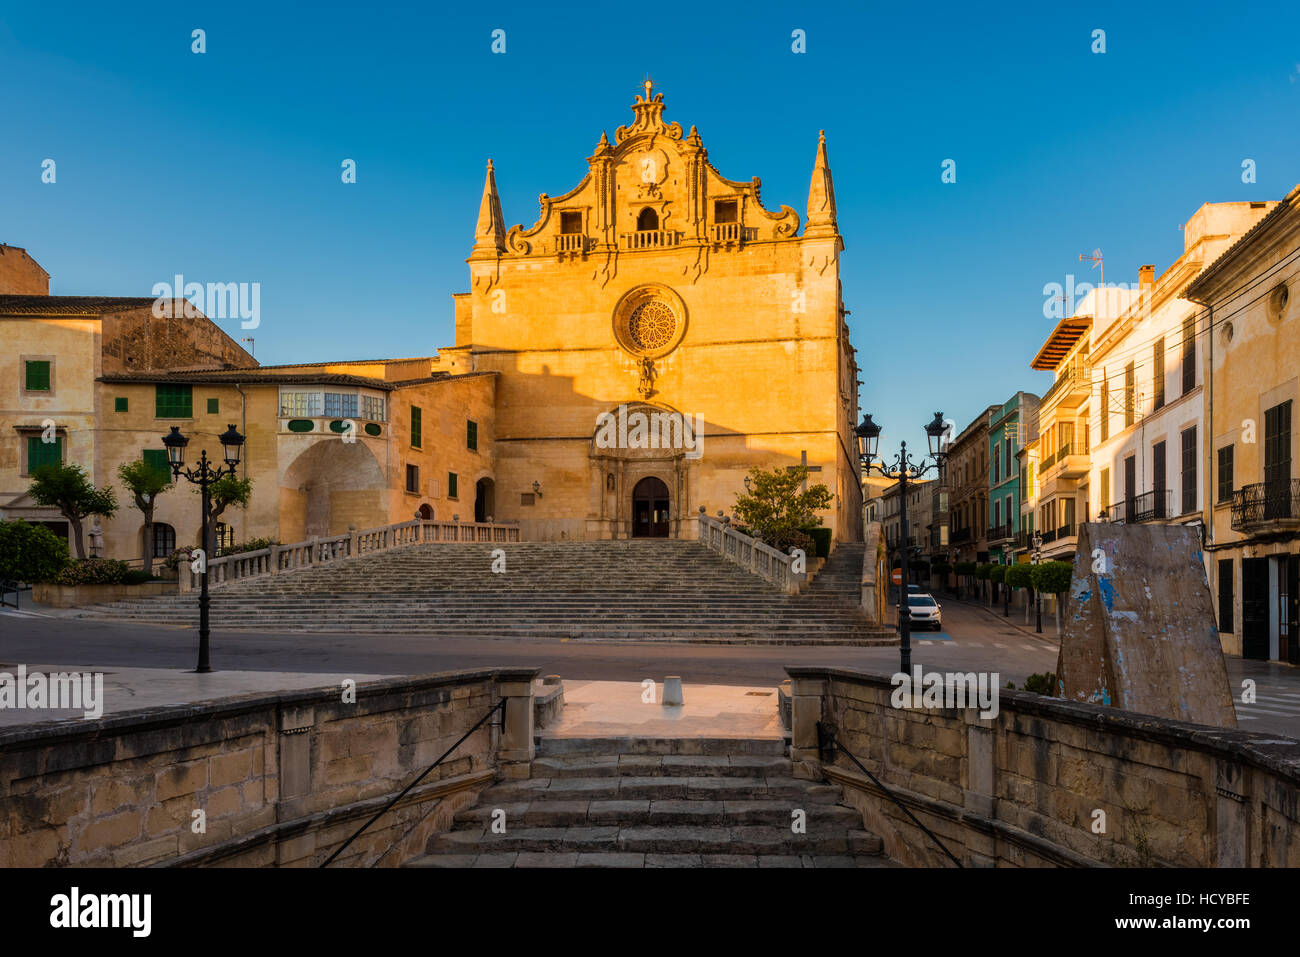 Church in Felanitx Mallorca - Stock Image